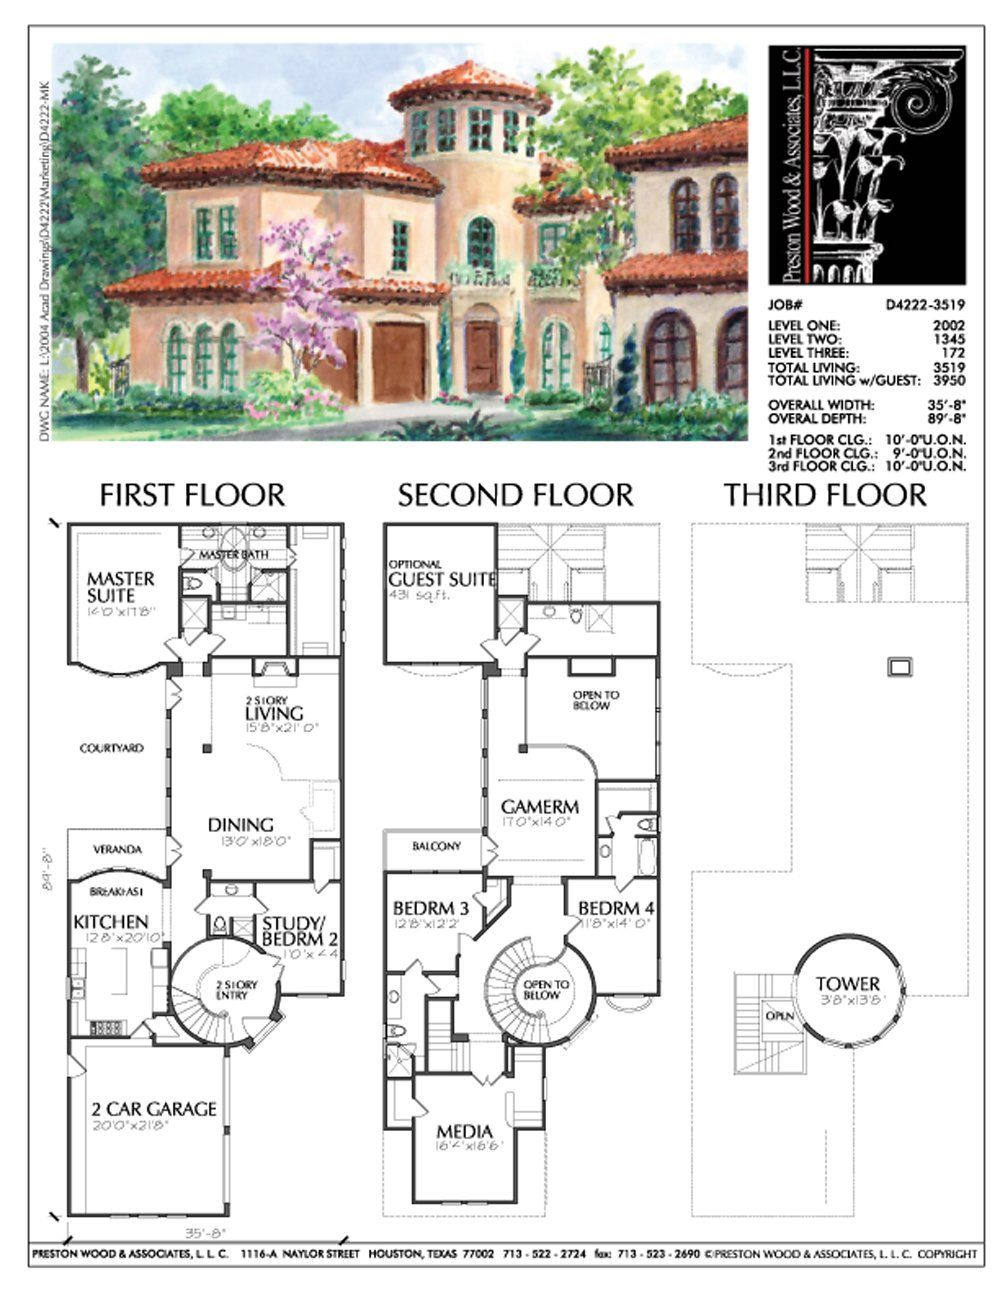 2 1 2 Story Urban Home Plan D4222 House Blueprints Mediterranean House Plans Mediterranean Homes